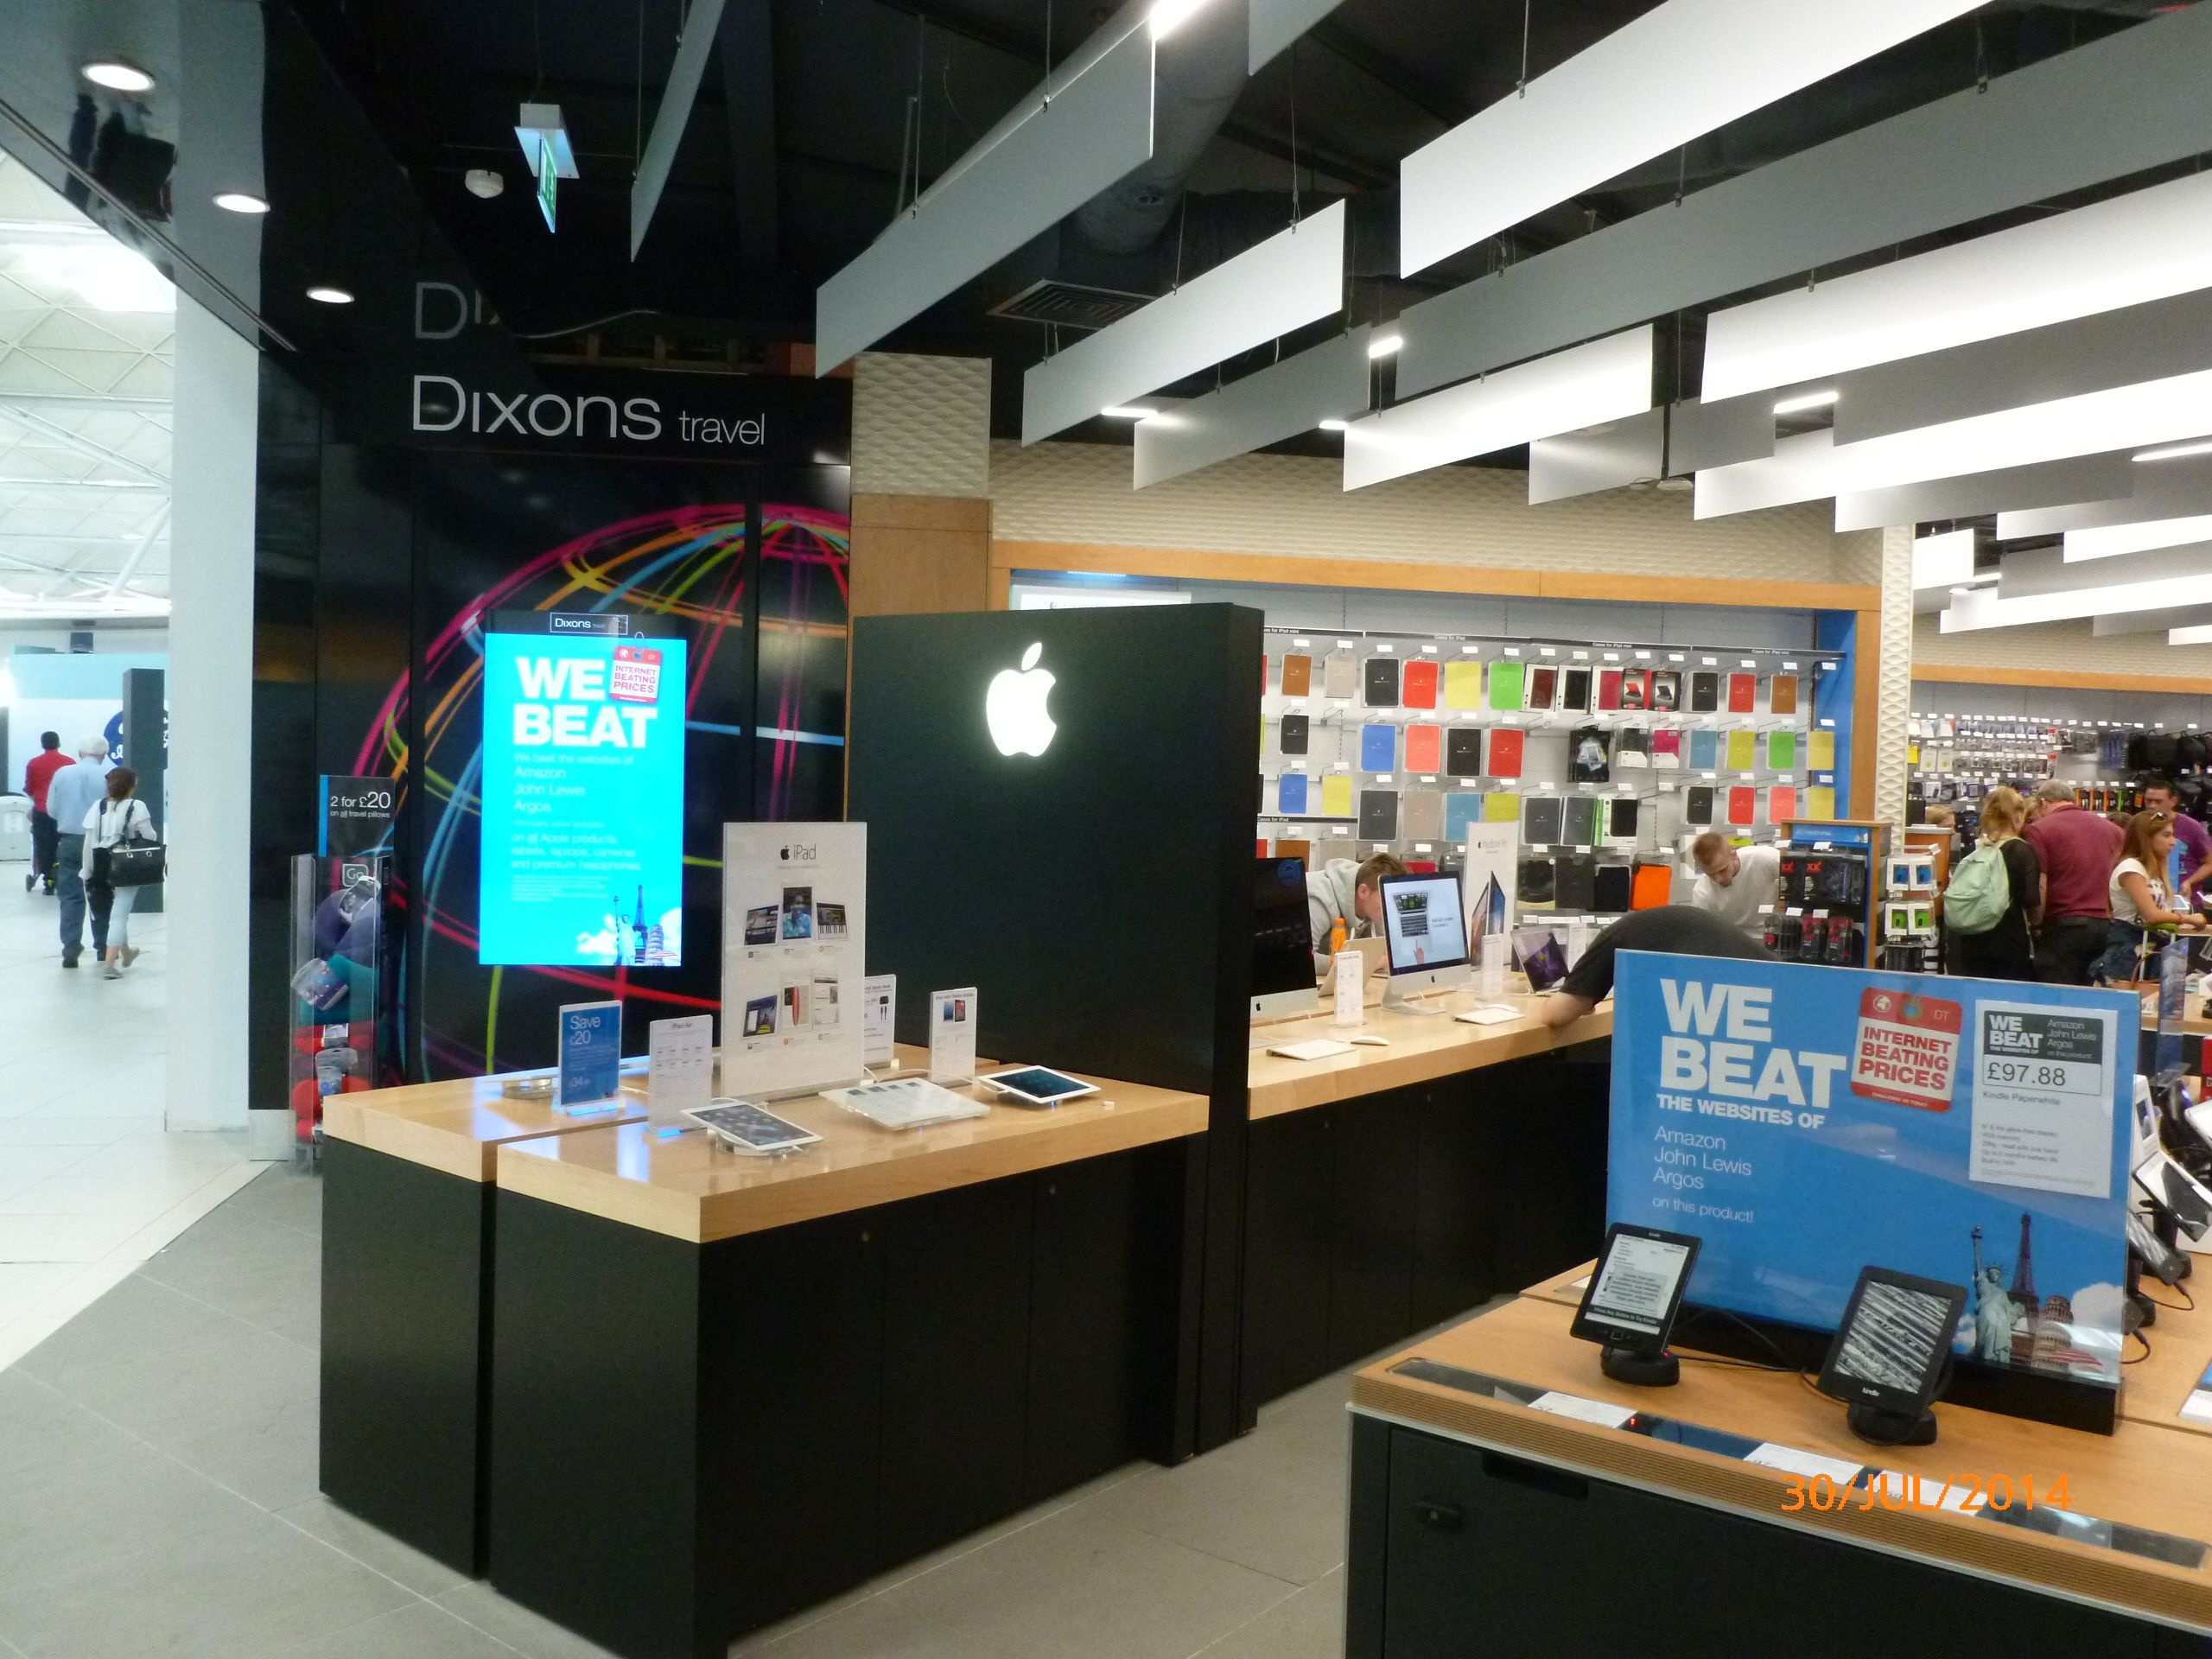 Another view of our new Dixons Travel store in Stansted